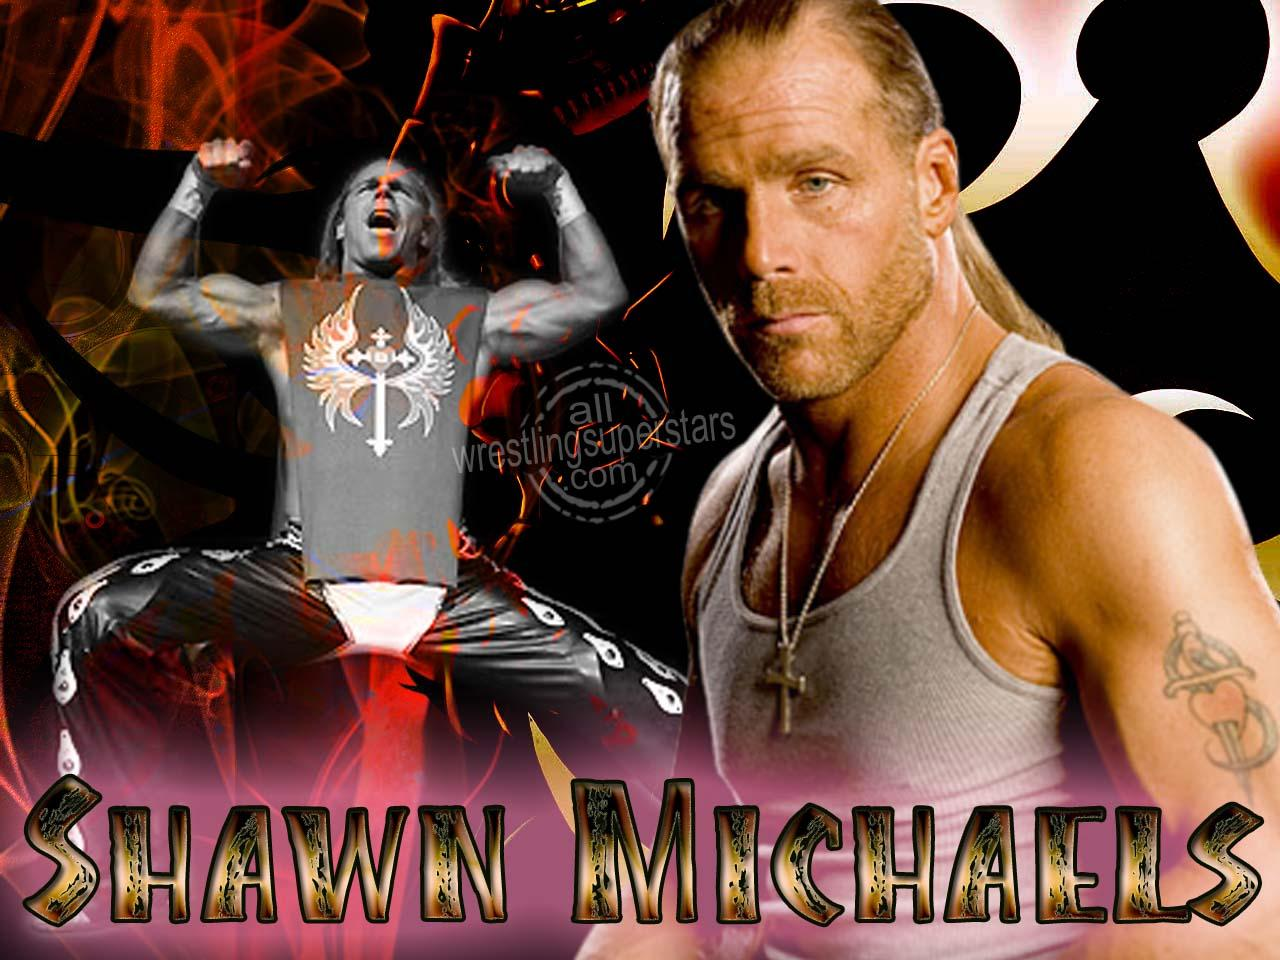 WWE Superstar Shawn Michaels HD wallpapers 1280x960